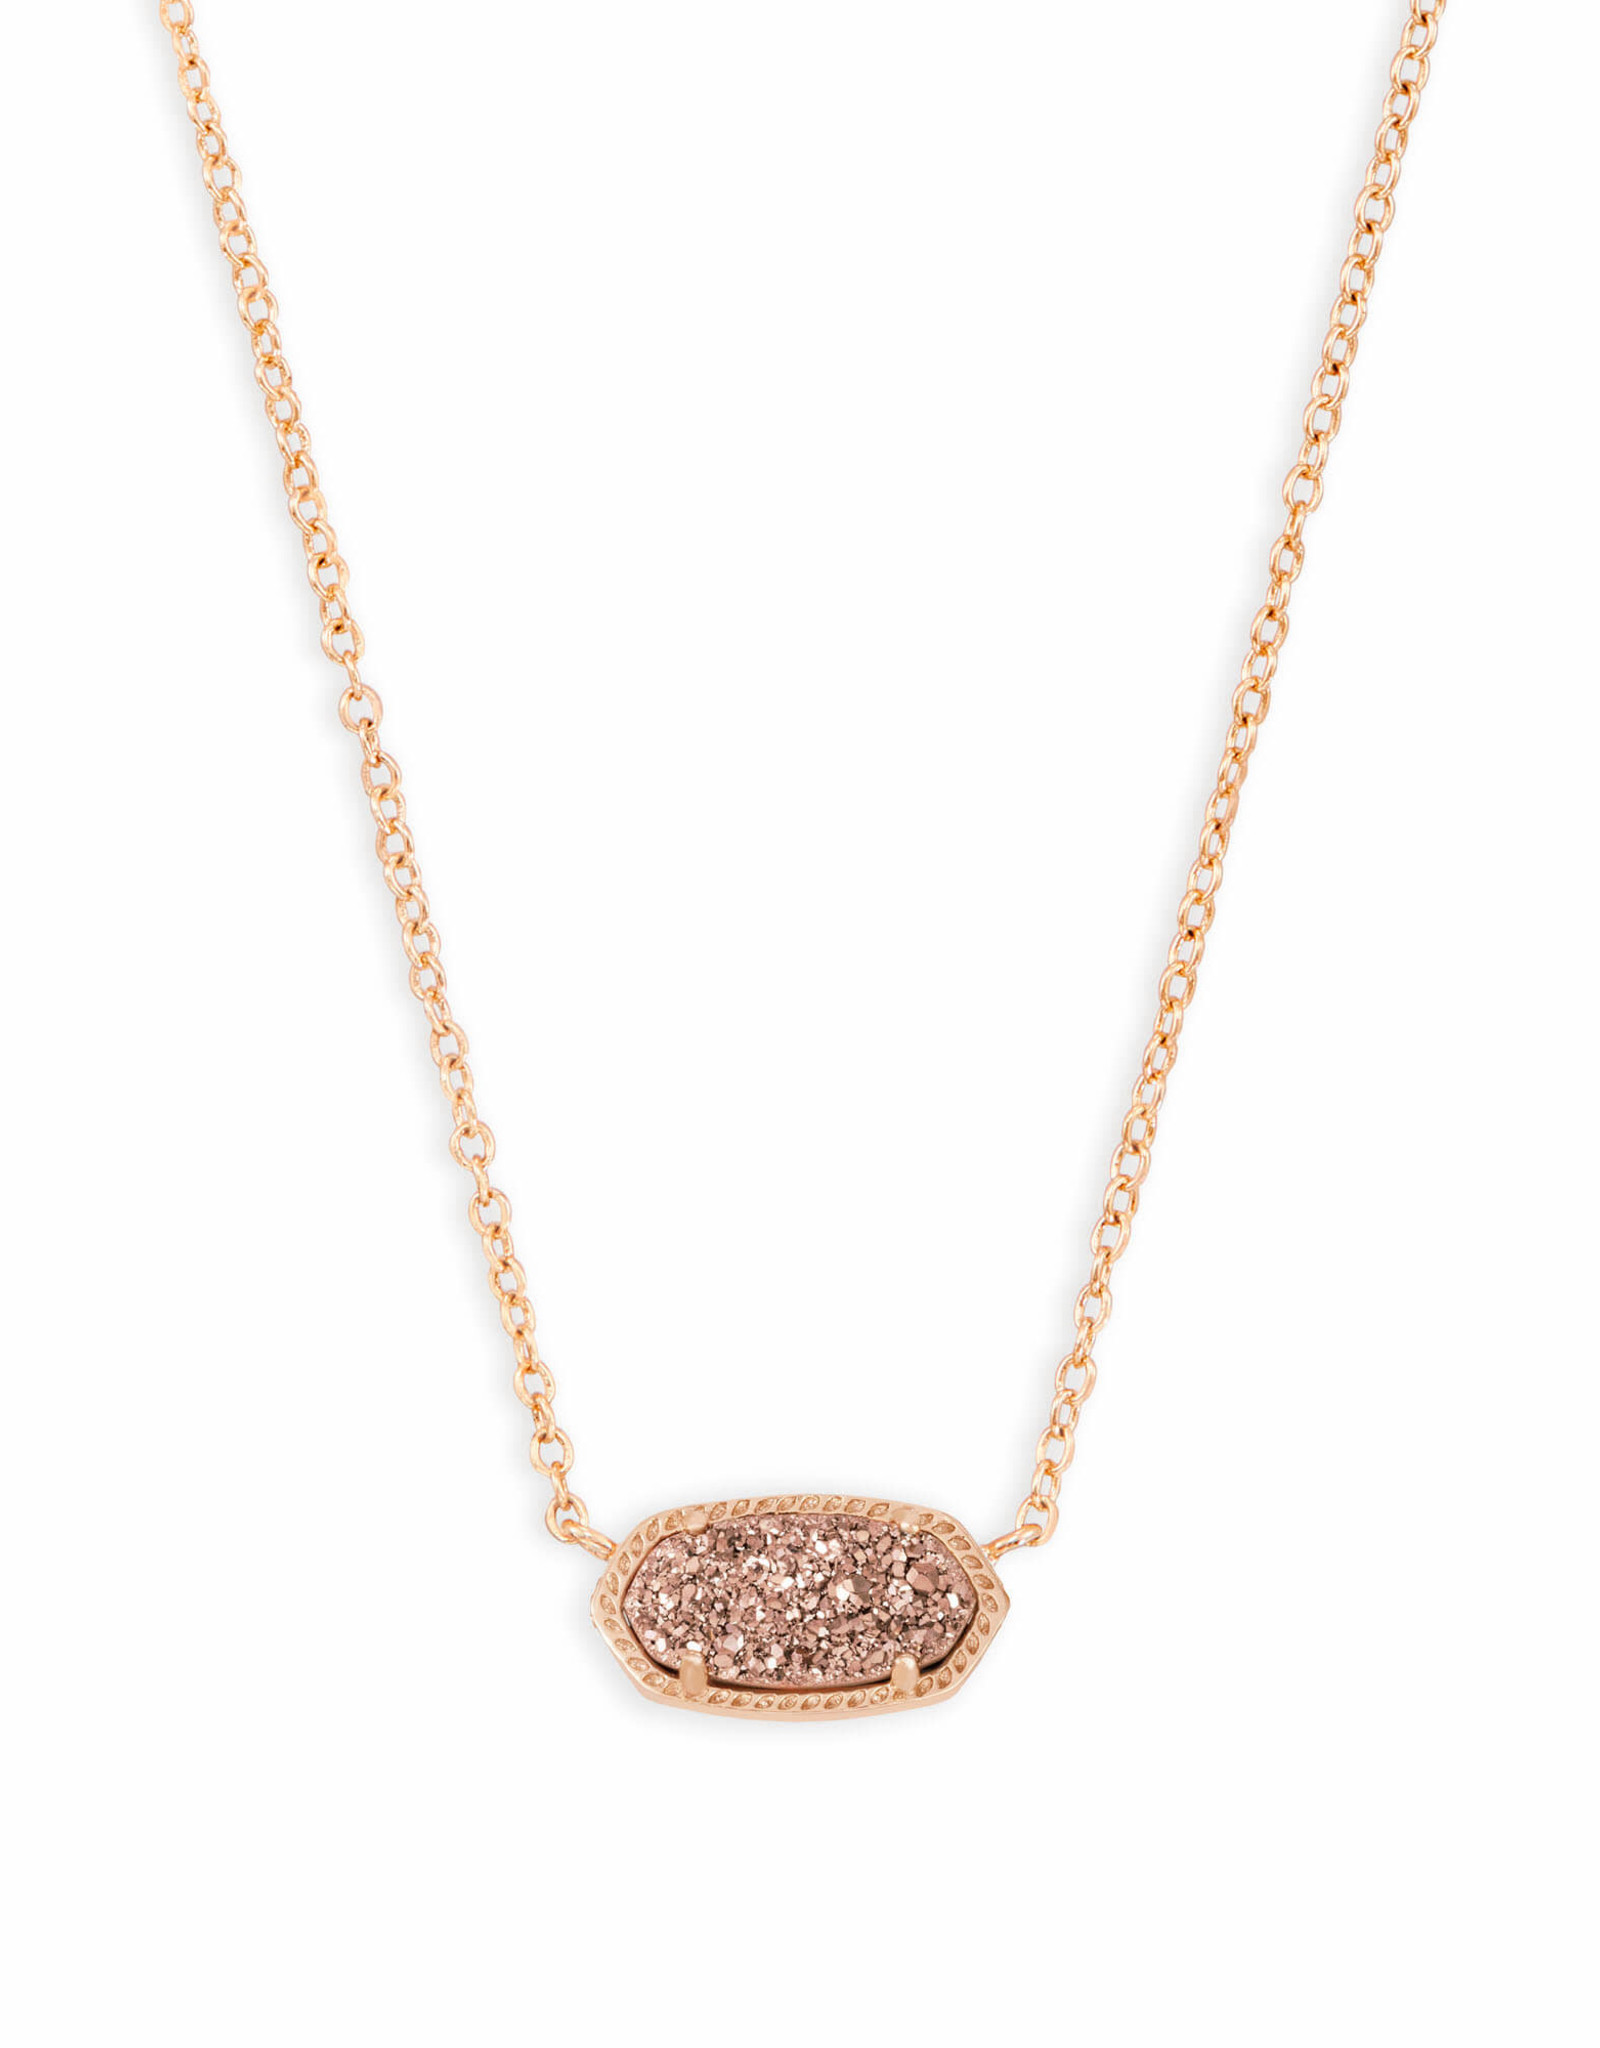 Kendra Scott Elisa Necklace - Rose Gold Drusy/Rose Gold